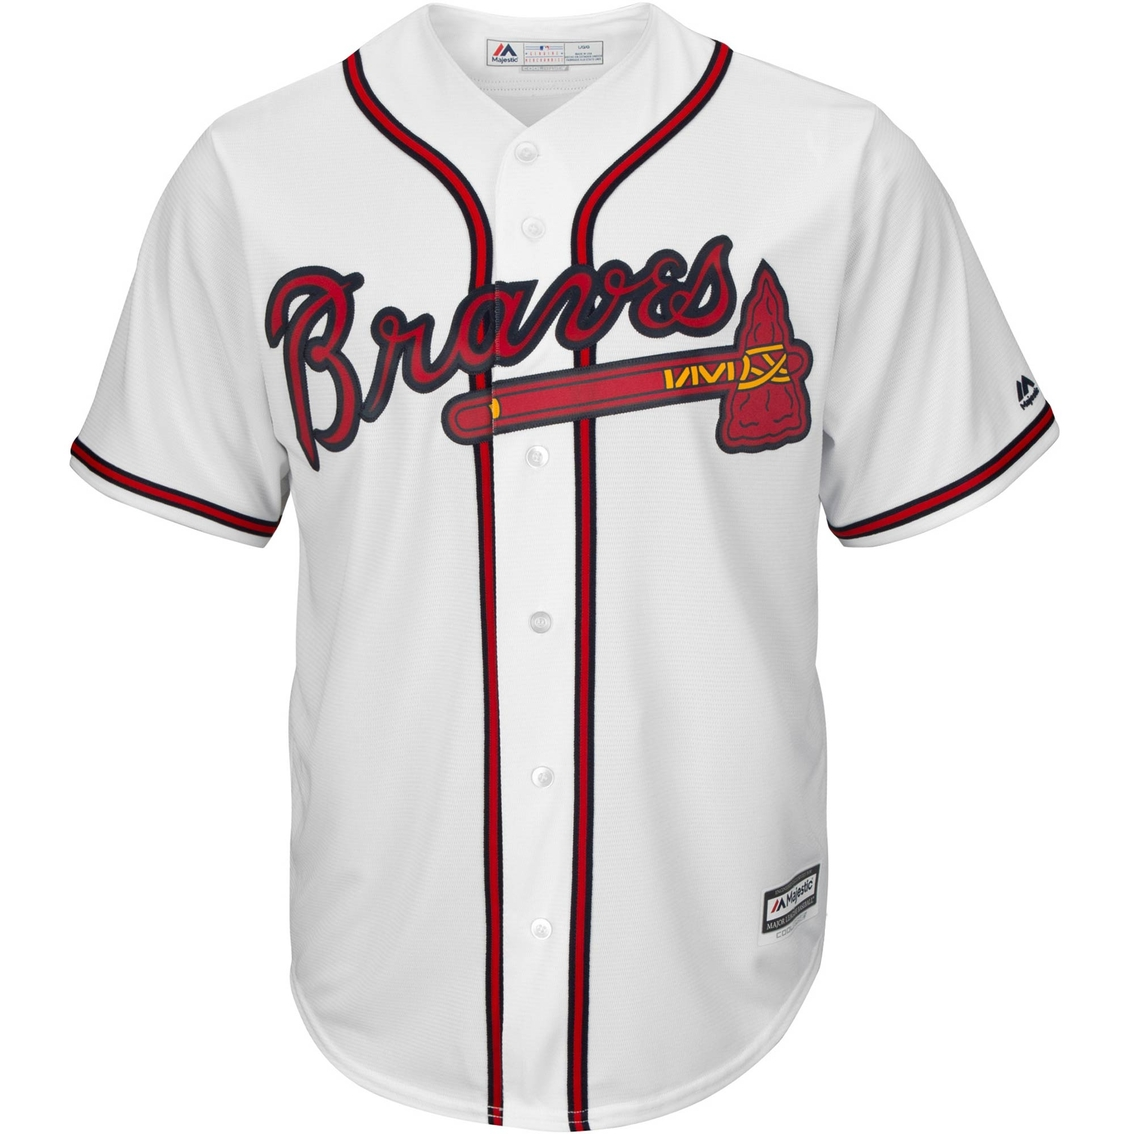 07633337c34 Majestic Mlb Atlanta Braves Men s Replica Home Jersey